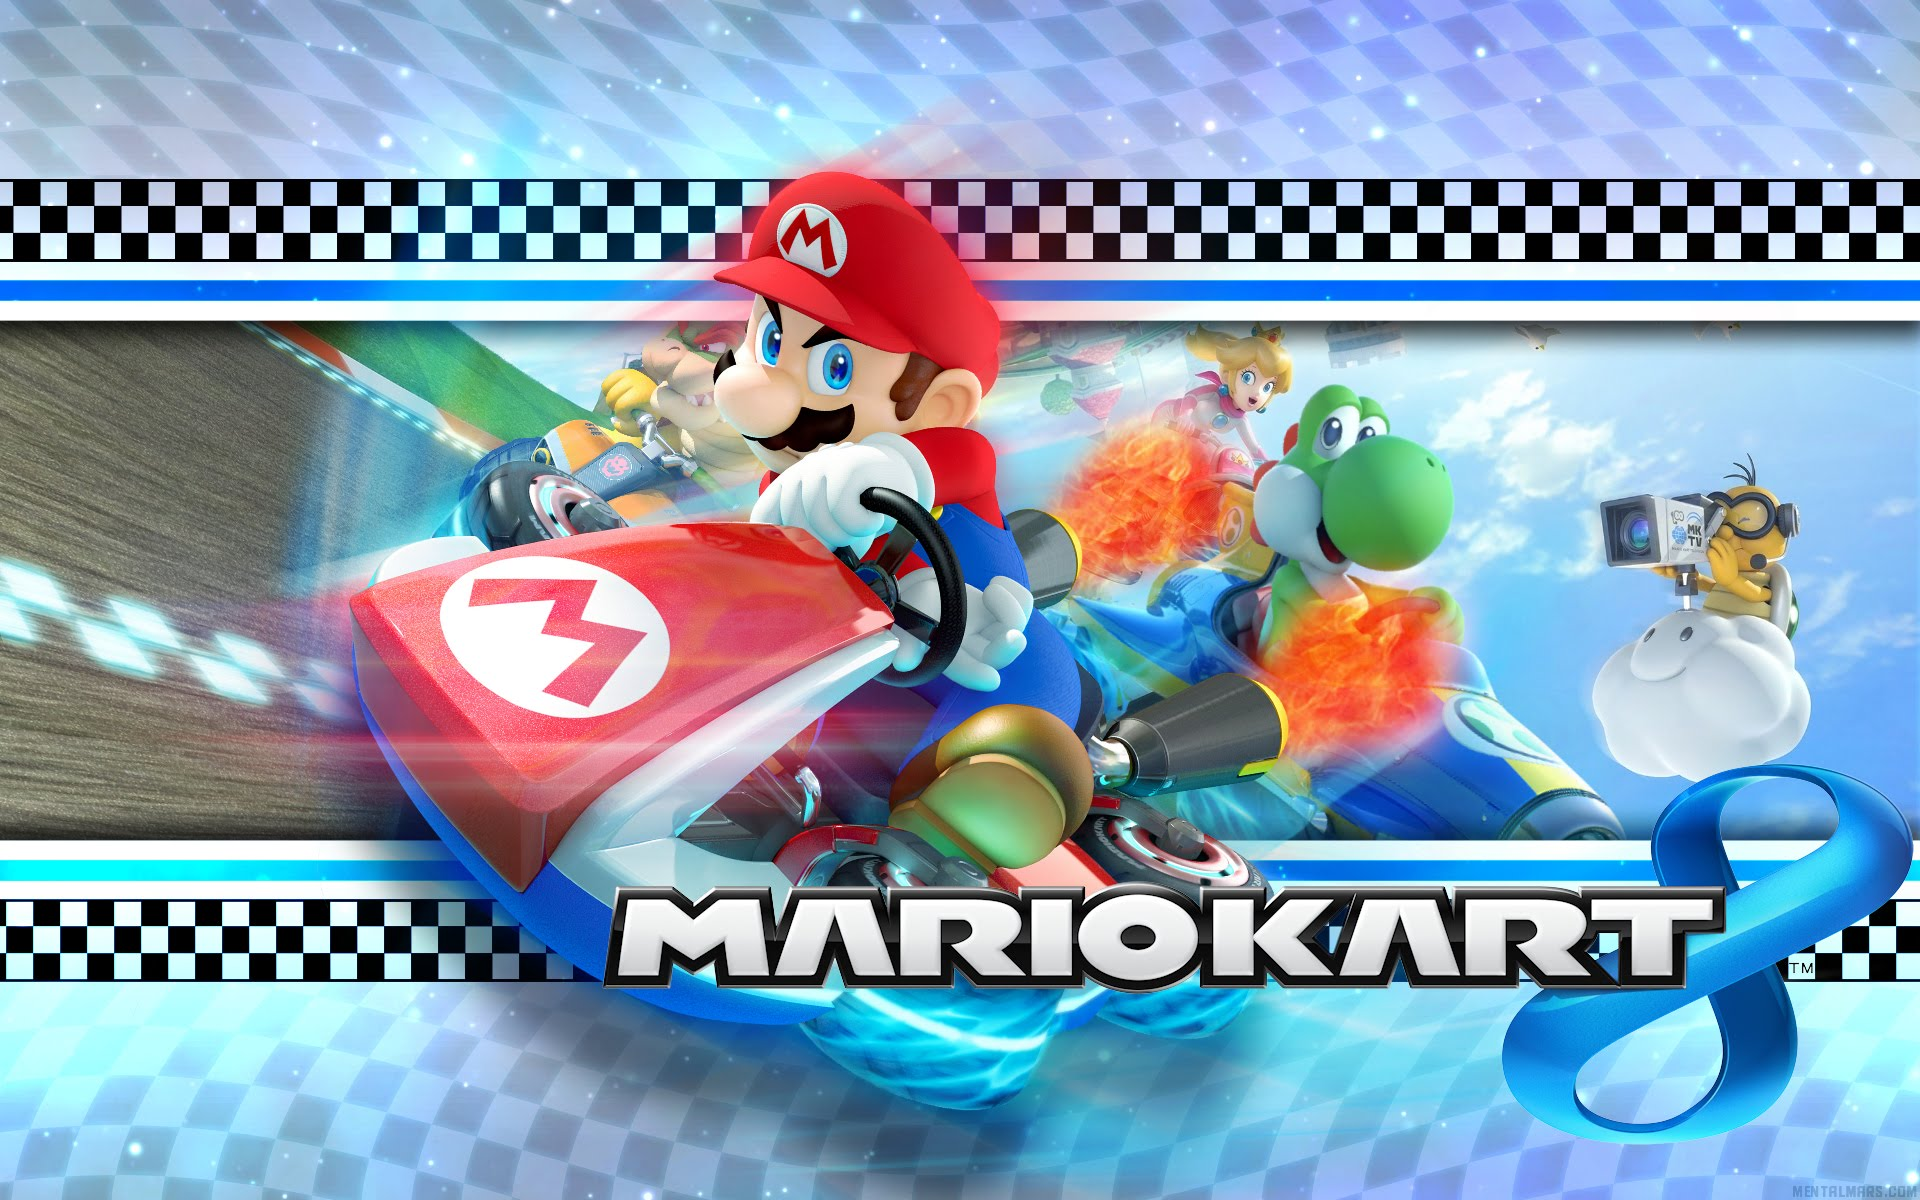 final del torneo de mario kart 8 de blogonavidades video de mario kart 8 vd36498 juegosadn. Black Bedroom Furniture Sets. Home Design Ideas